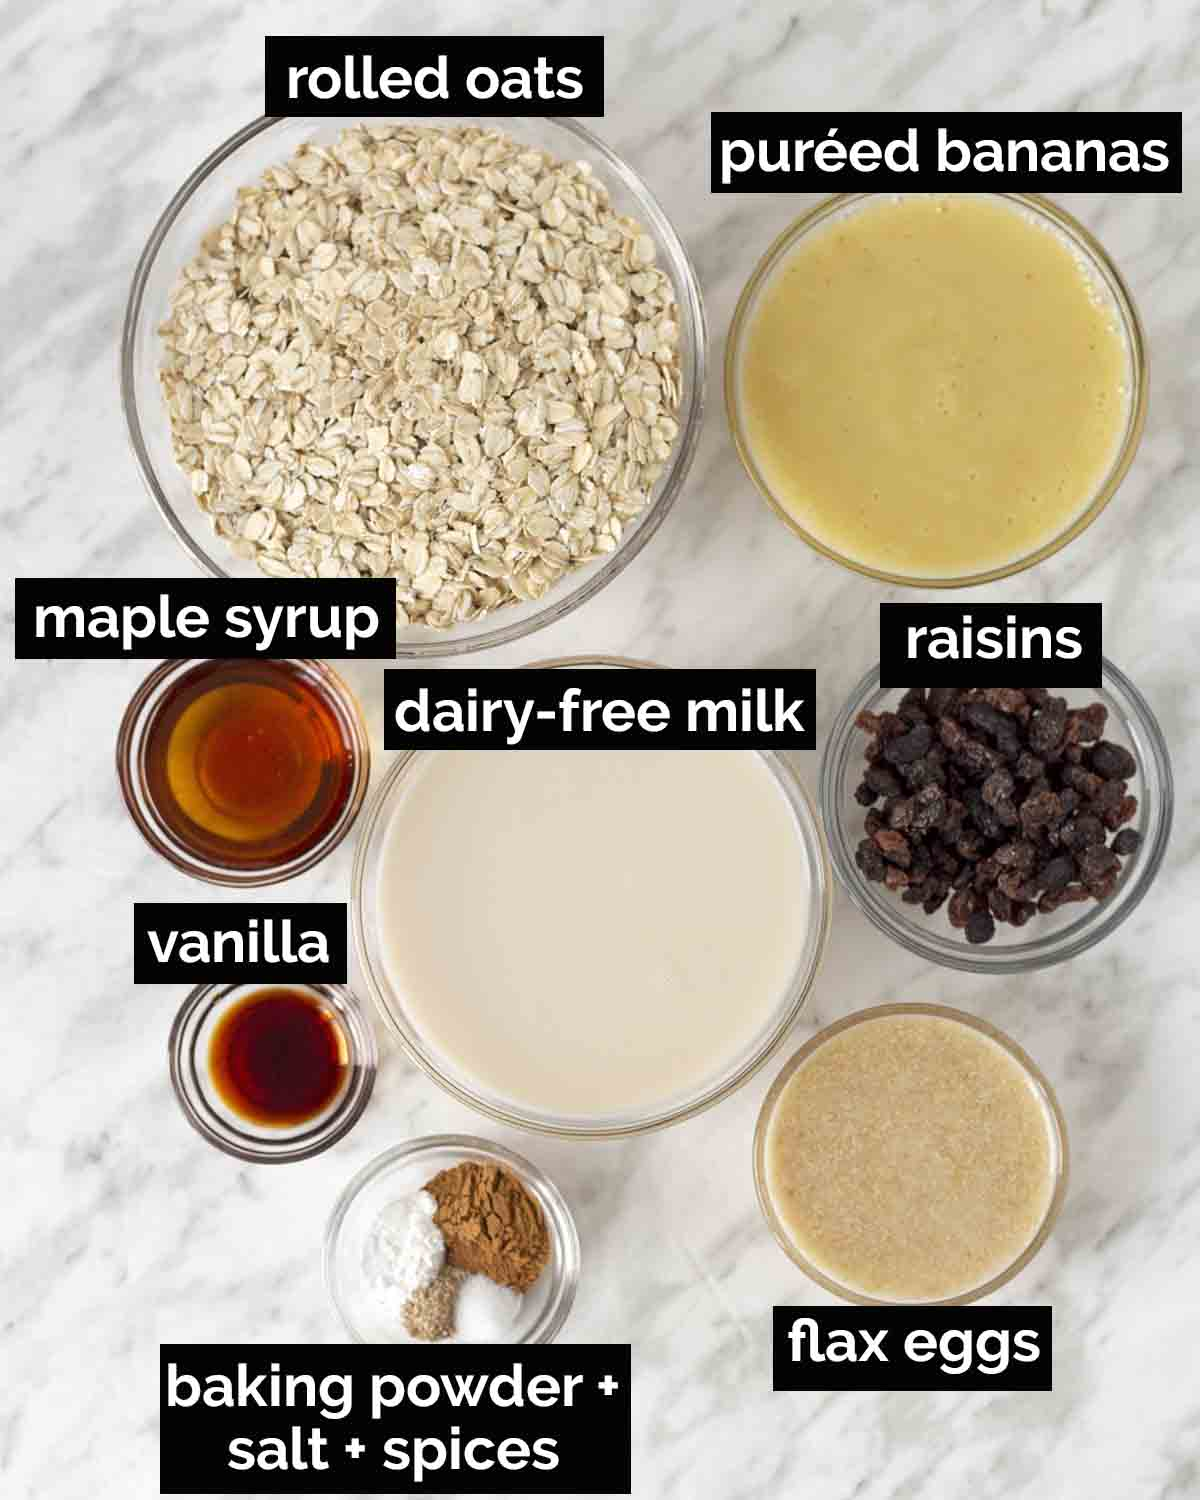 An overhead shot showing all the ingredients needed to make vegan baked oatmeal with bananas.